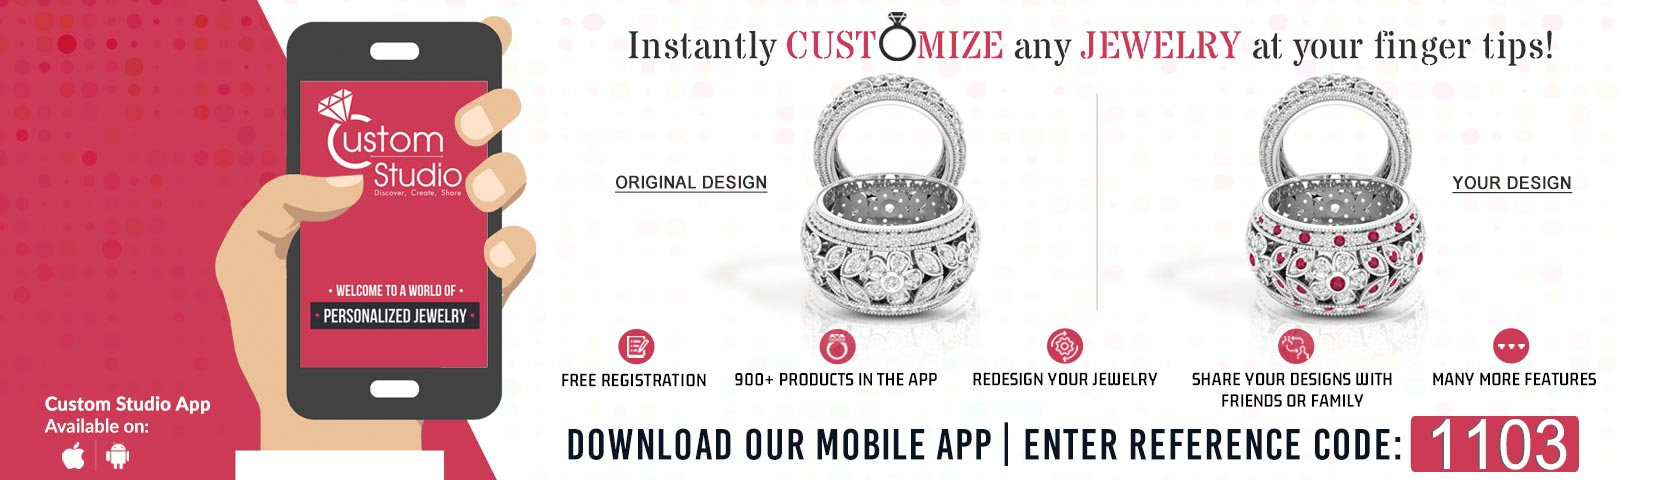 Customize Any Jewelry Instantly